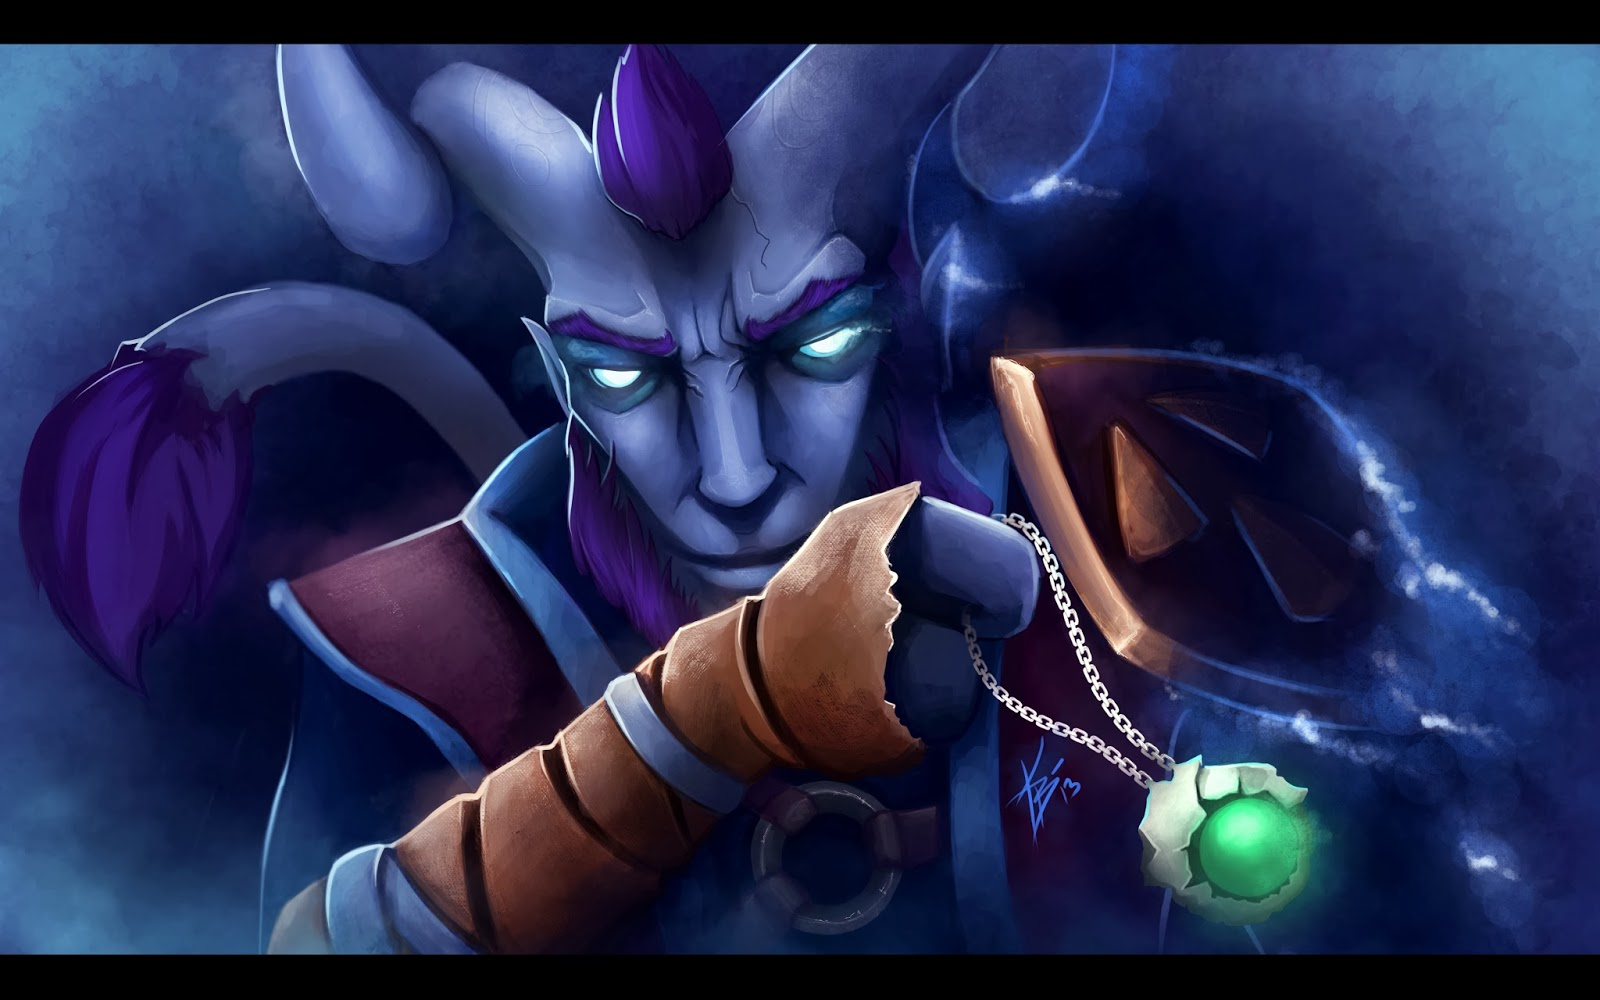 Dota 2 Wallpapers Dota 2 Wallpaper Hd Riki I Ll Steal Your Gem By